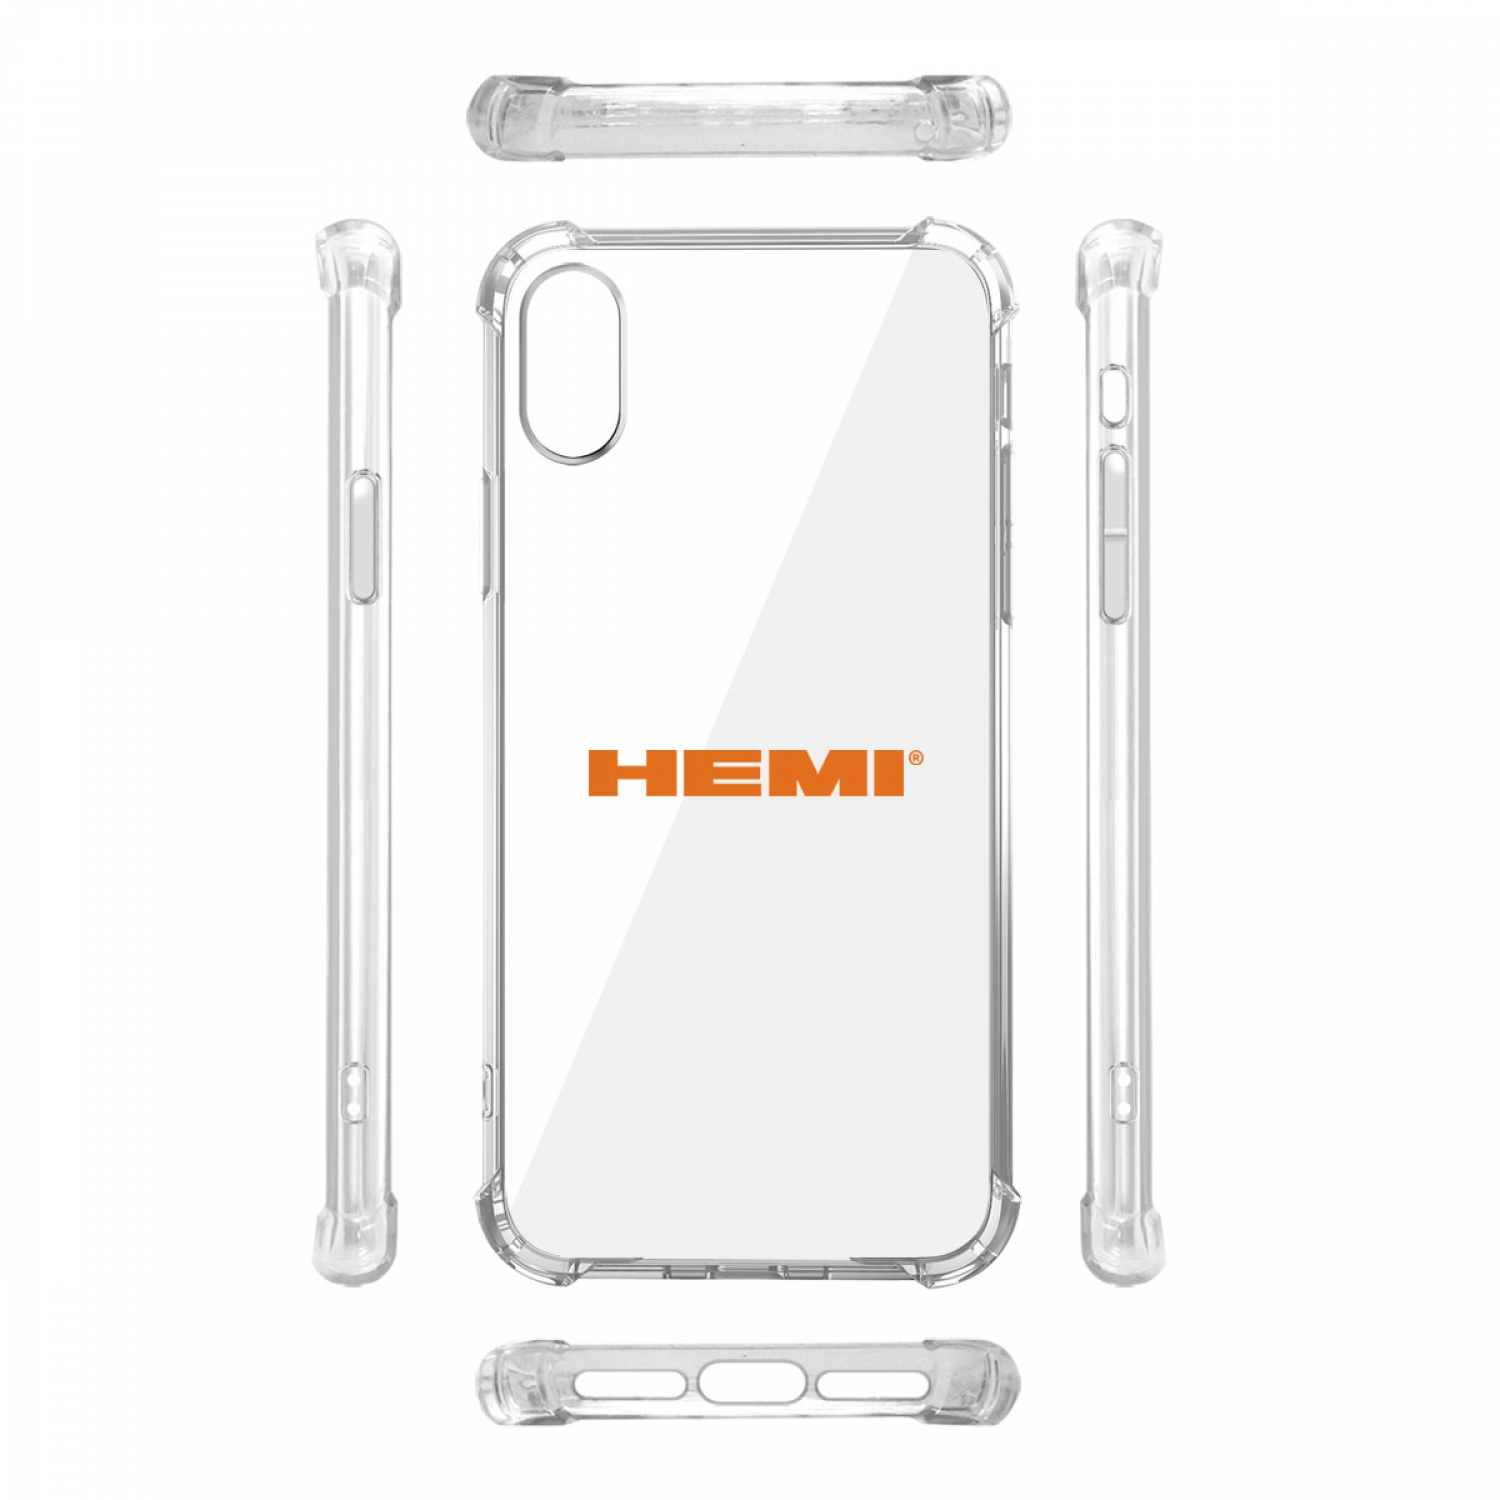 HEMI Logo iPhone X Clear TPU Shockproof Cell Phone Case